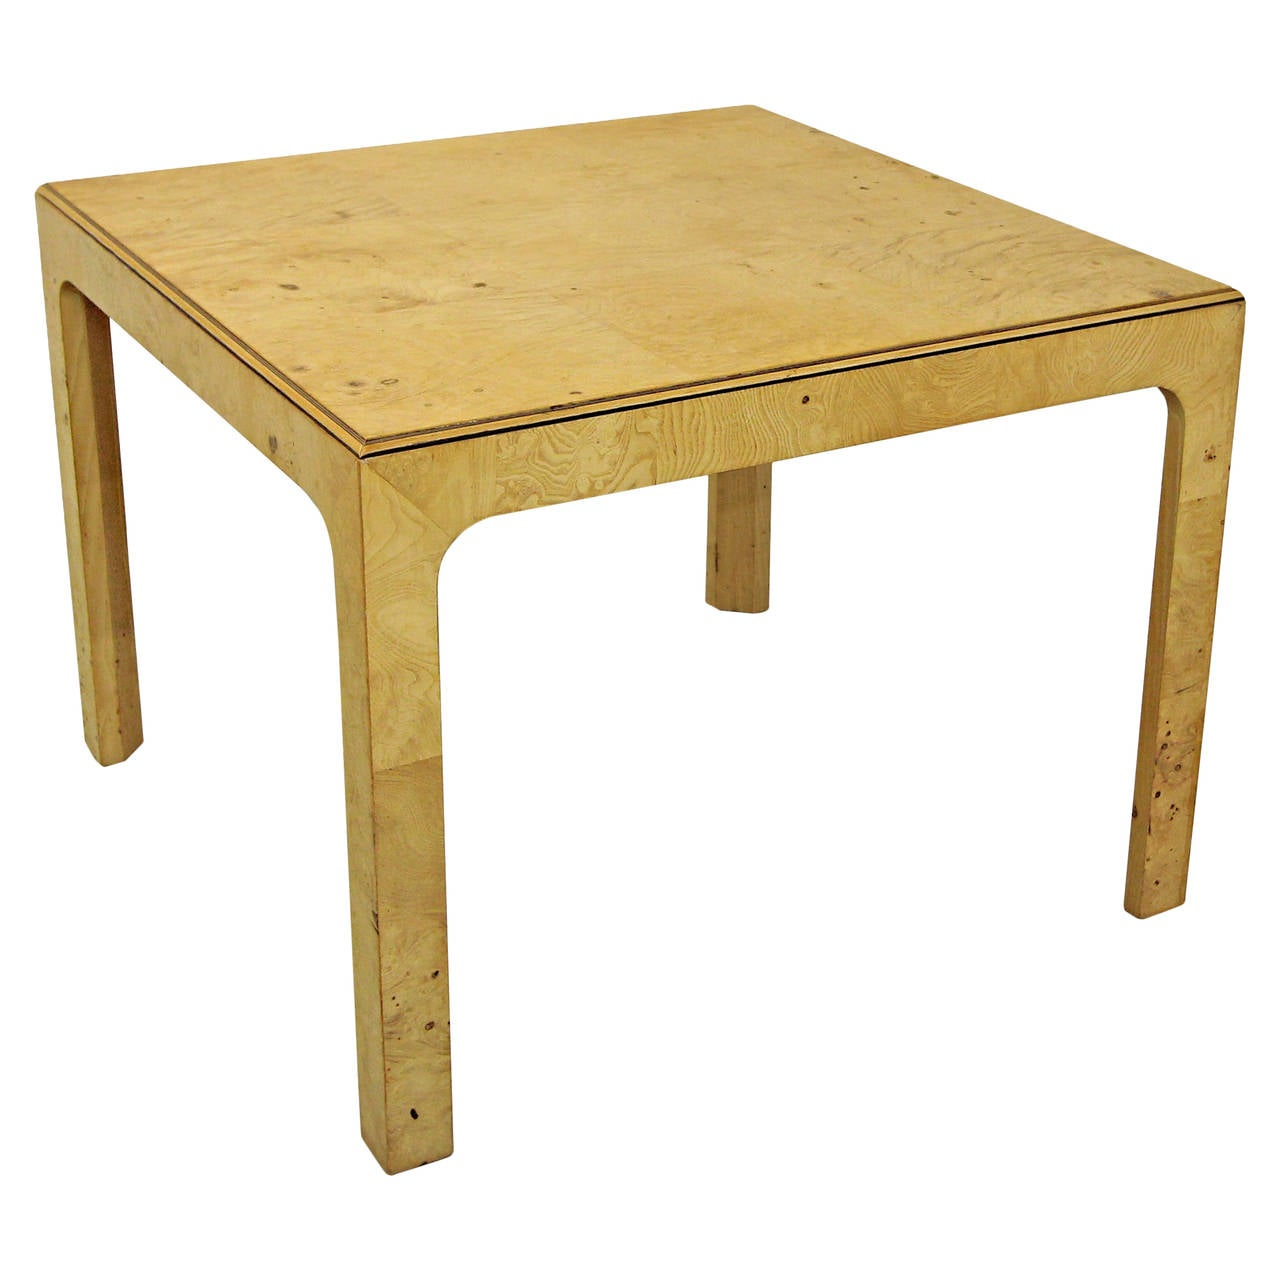 Henredon scene two parson style coffee or side table at 1stdibs Coffee table and side table